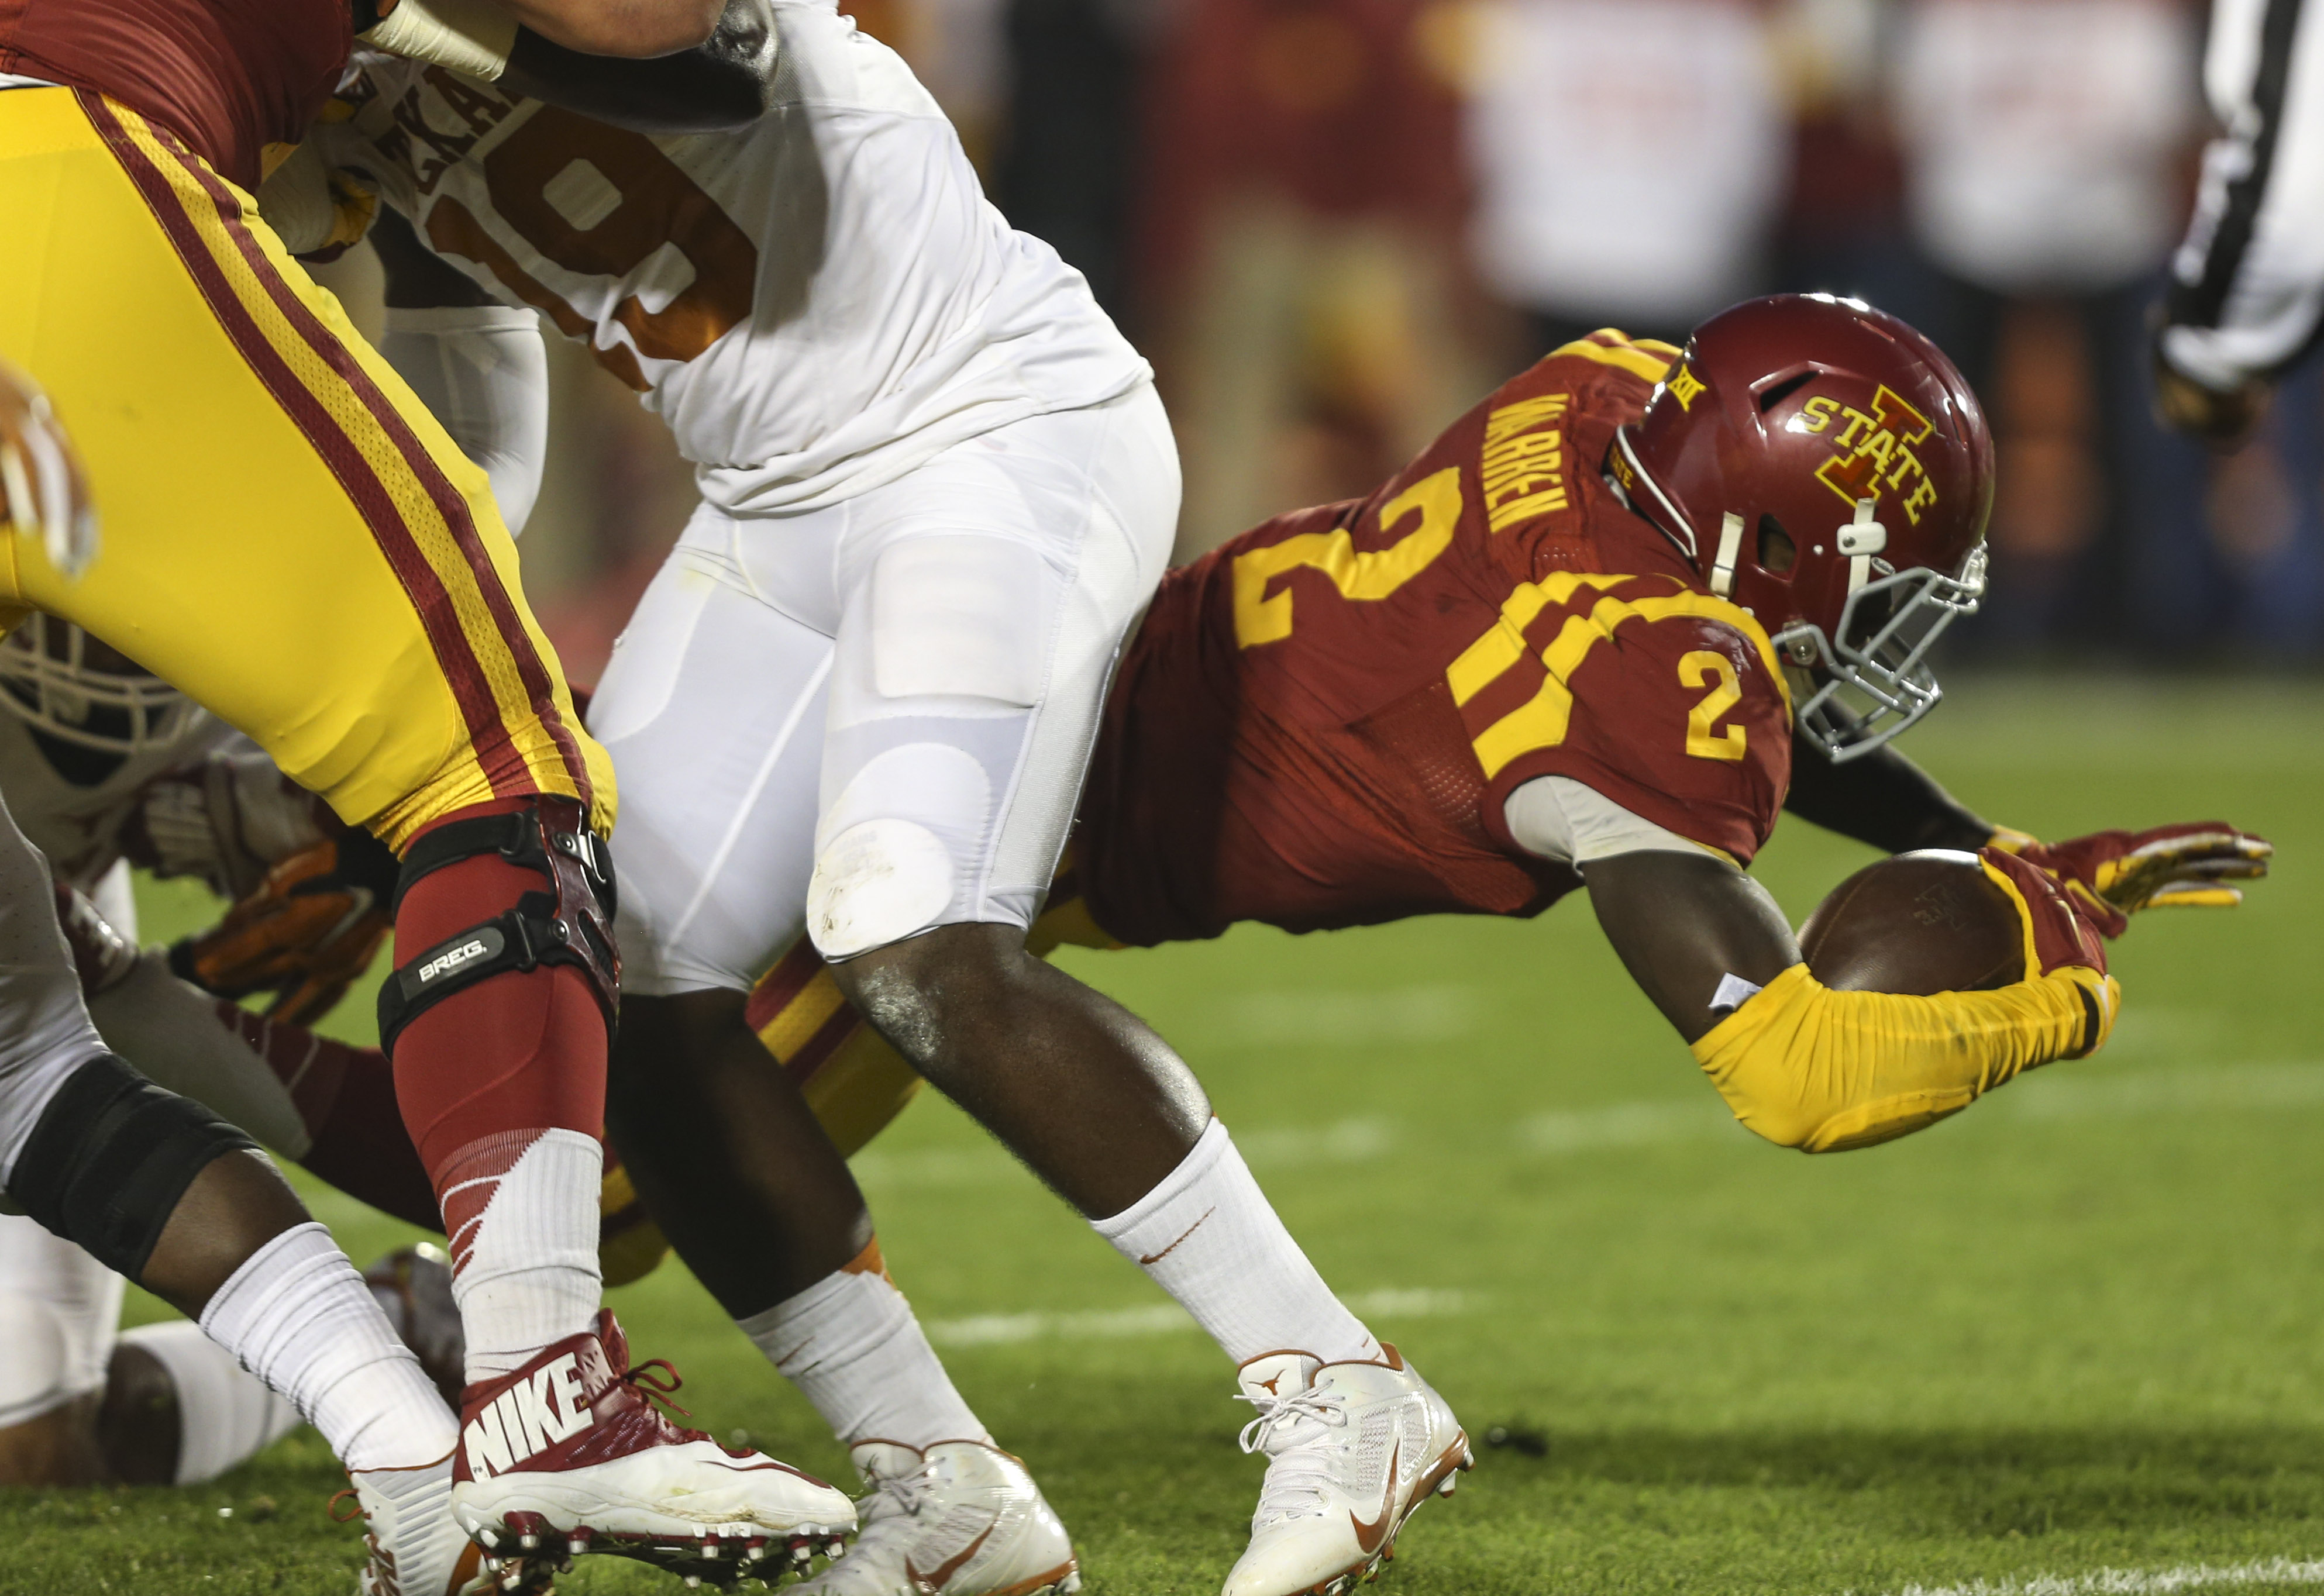 Iowa State running back Mike Warren dives into the end zone for a touchdown during the first half of an NCAA college football game against Texas, Saturday, Oct. 31, 2015, in Ames, Iowa. (AP Photo/Justin Hayworth)